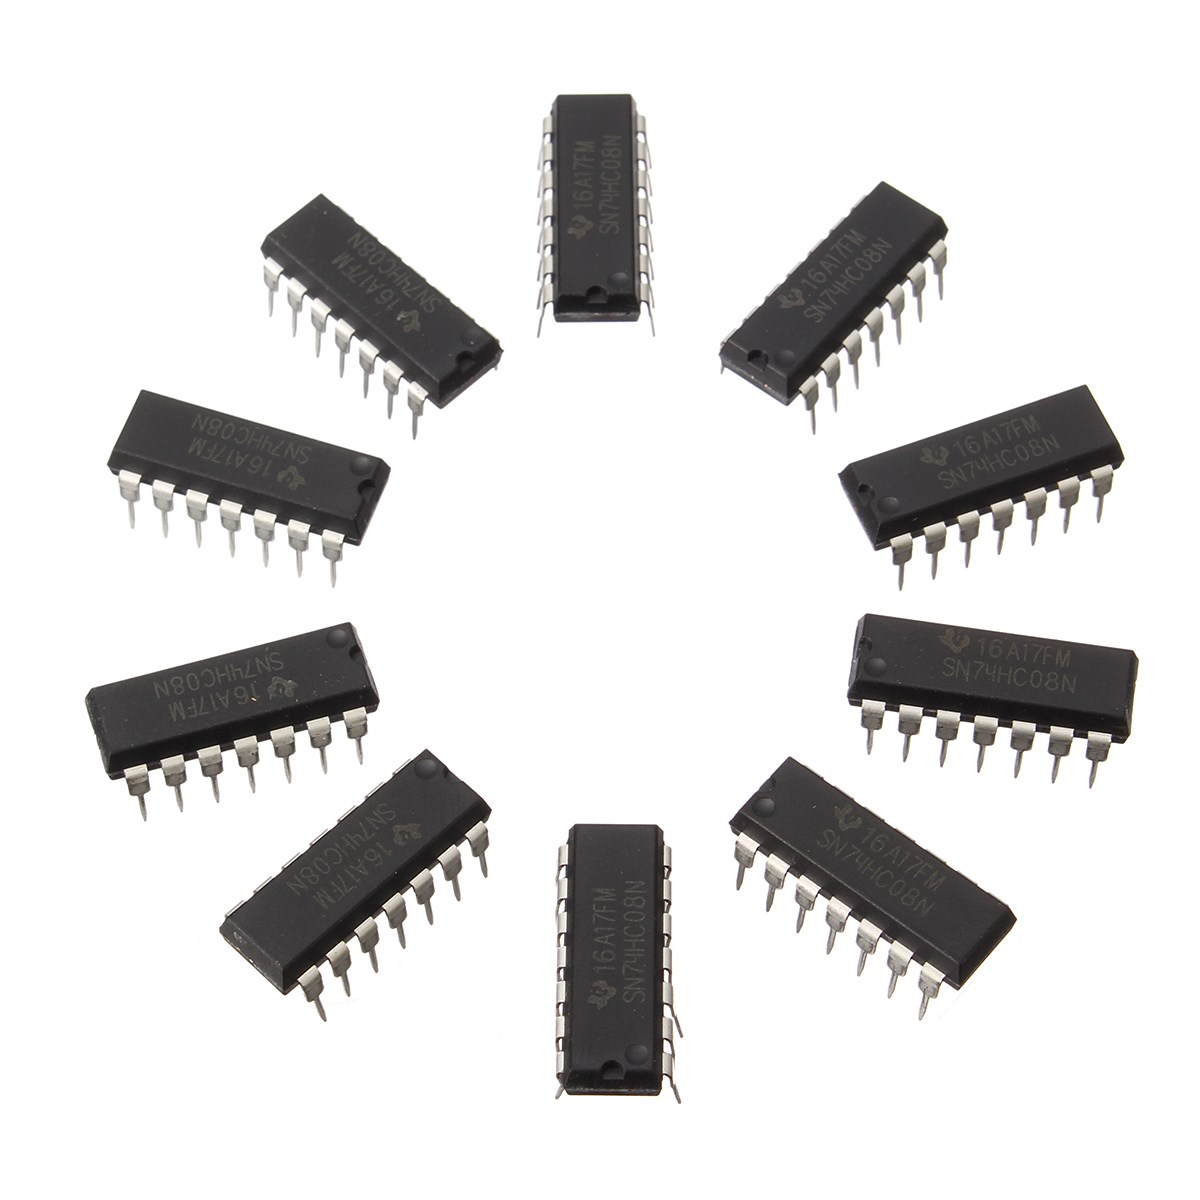 10PCS SN74HC08N DIP14 SN74HC08 DIP 74HC08N 74HC08 IC Integrated Circuits Chips